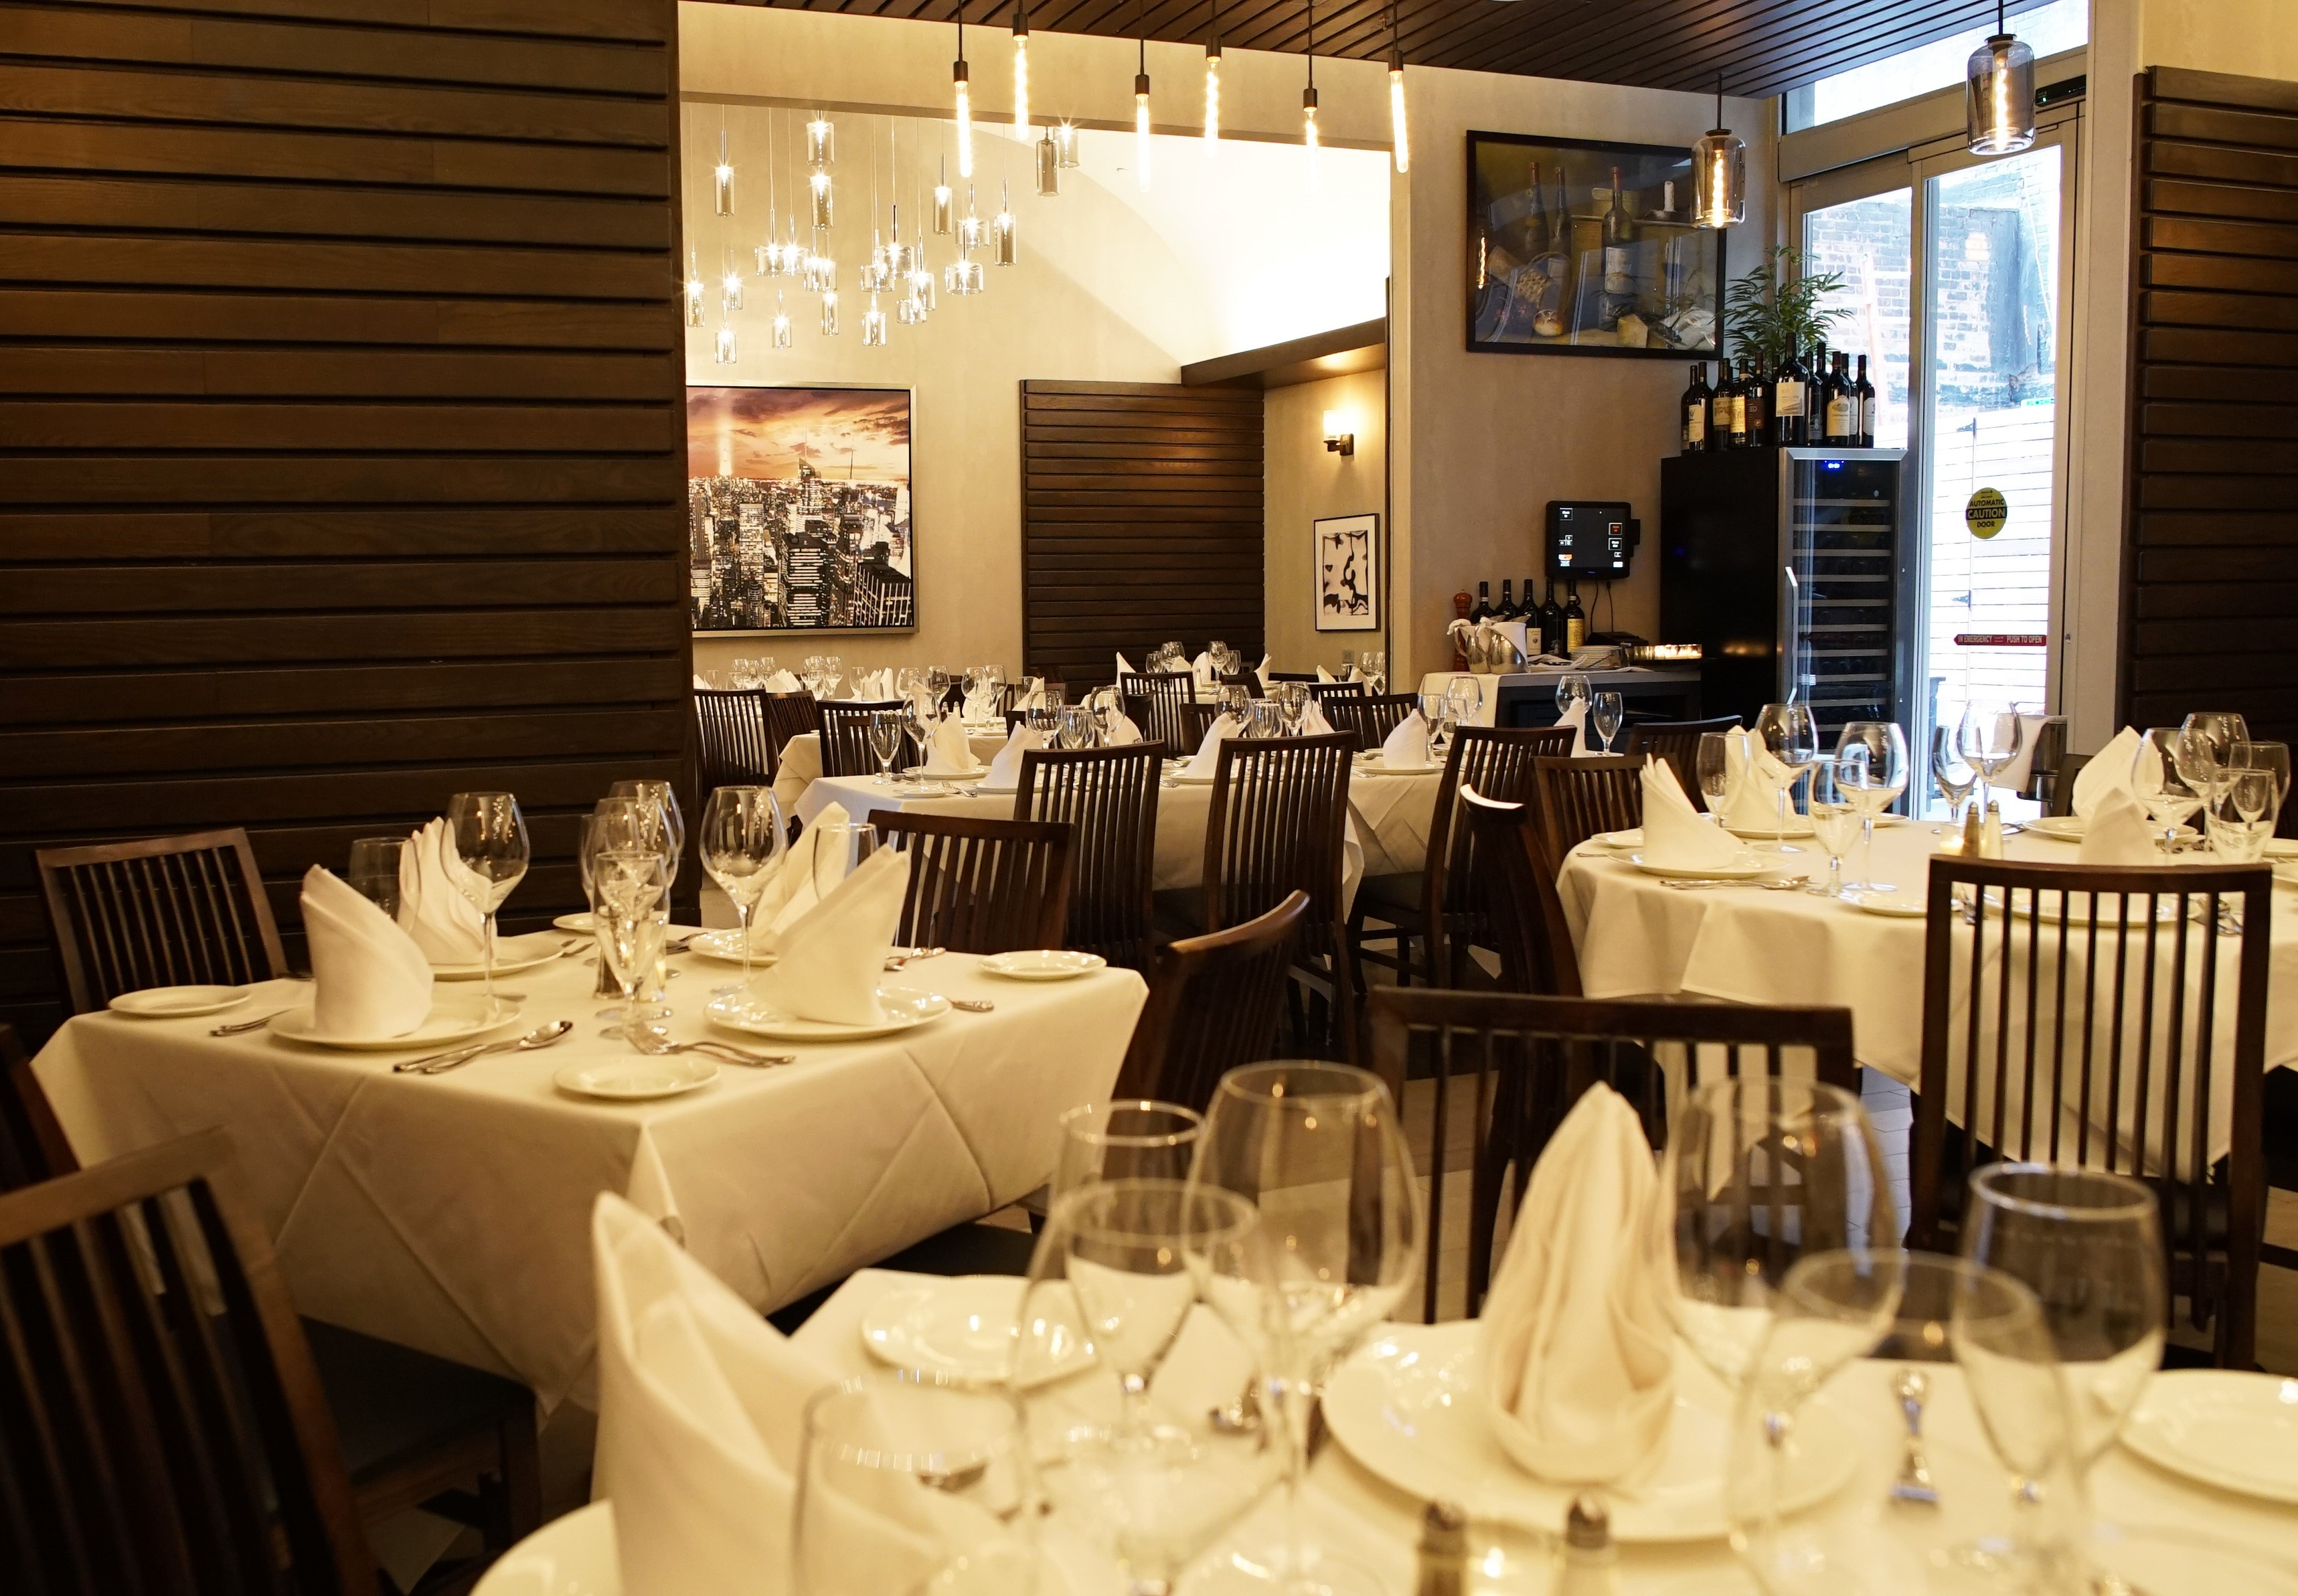 Photo #3 Dining Room 1 at Chazz Palminteri Italian Restaurant